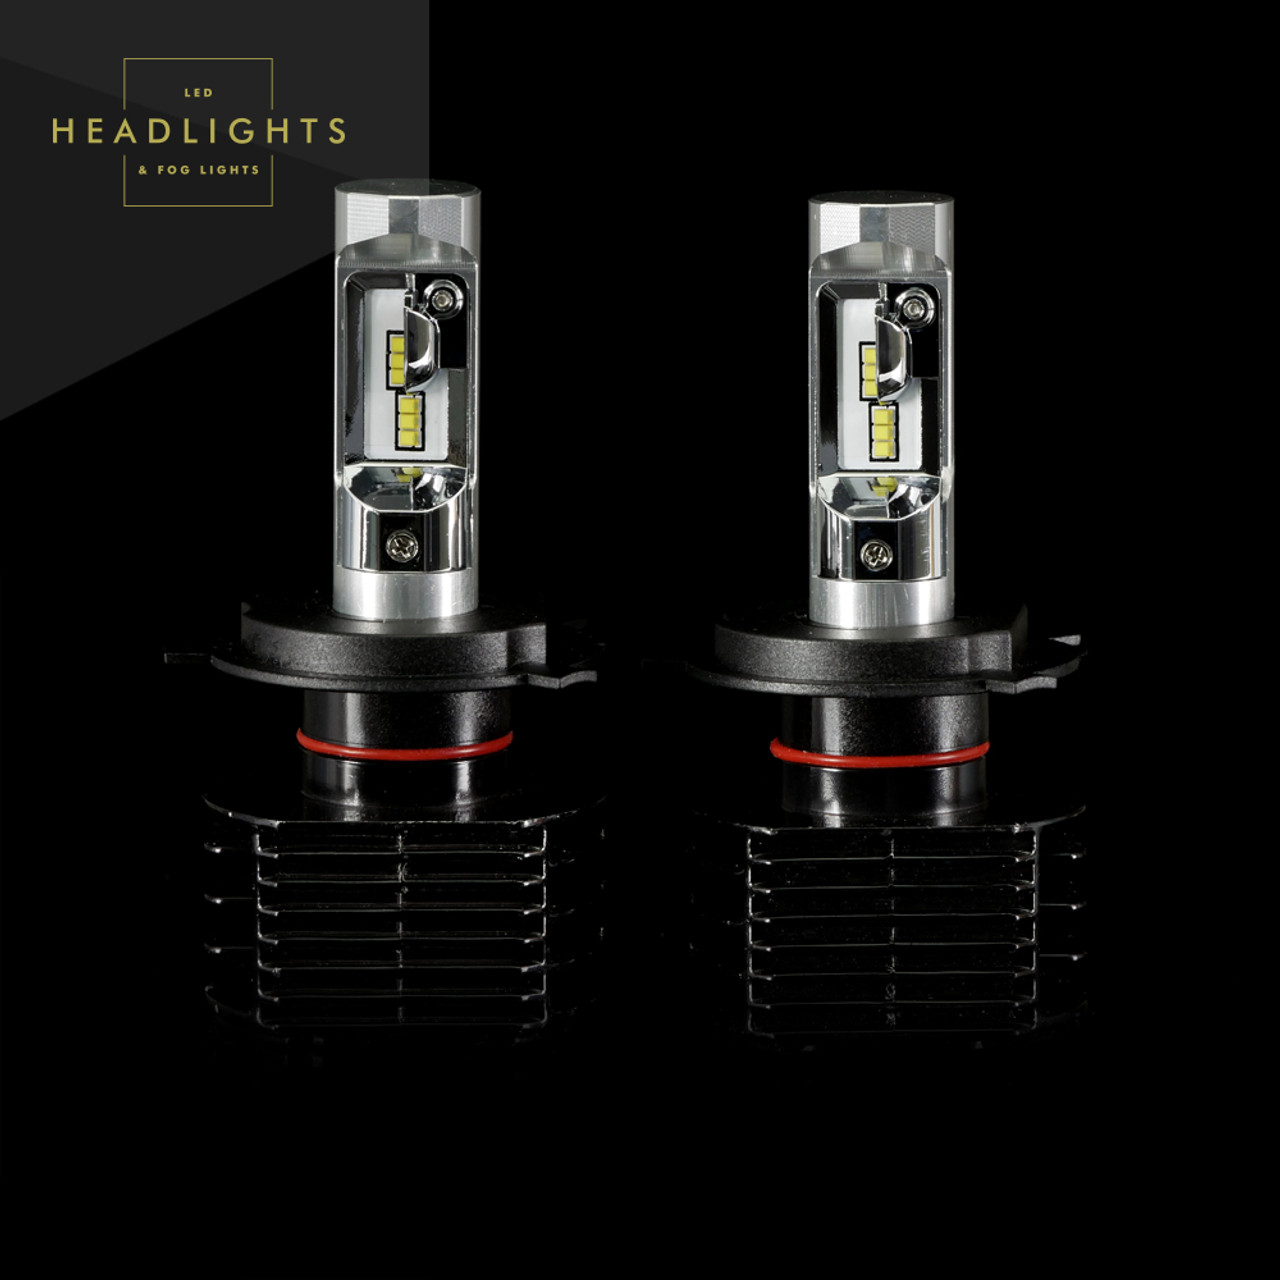 hight resolution of gtr lighting ultra series led headlight bulbs h4 9003 3rd generation